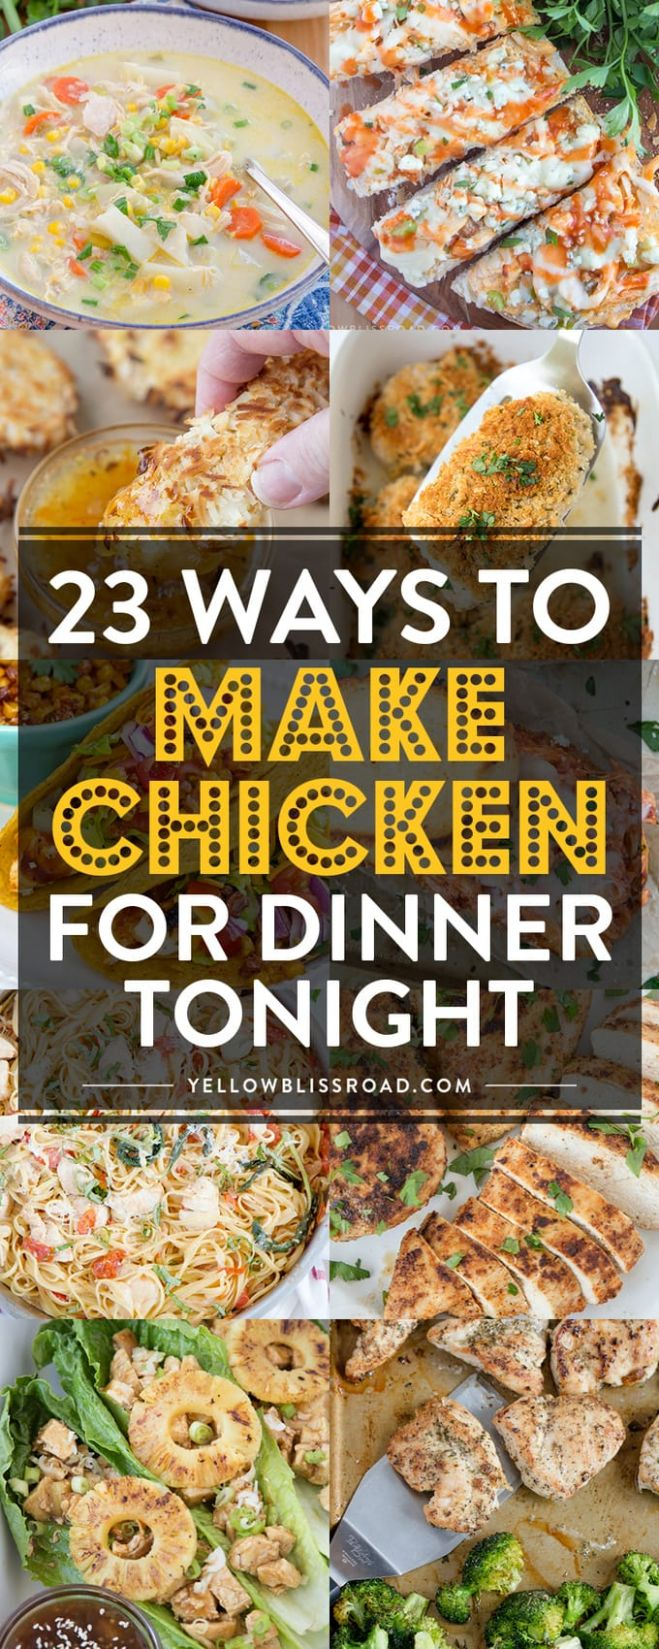 11 Ways to Make Chicken Breasts for Dinner Tonight ..